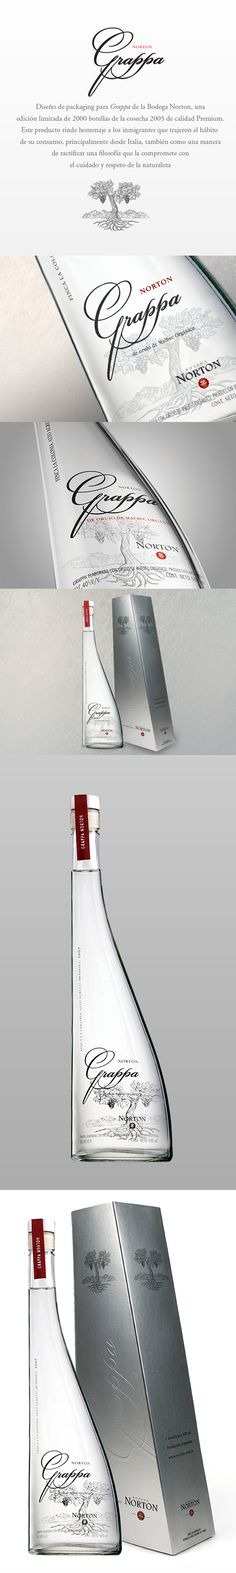 NORTON | Grappa on Packaging Design Served